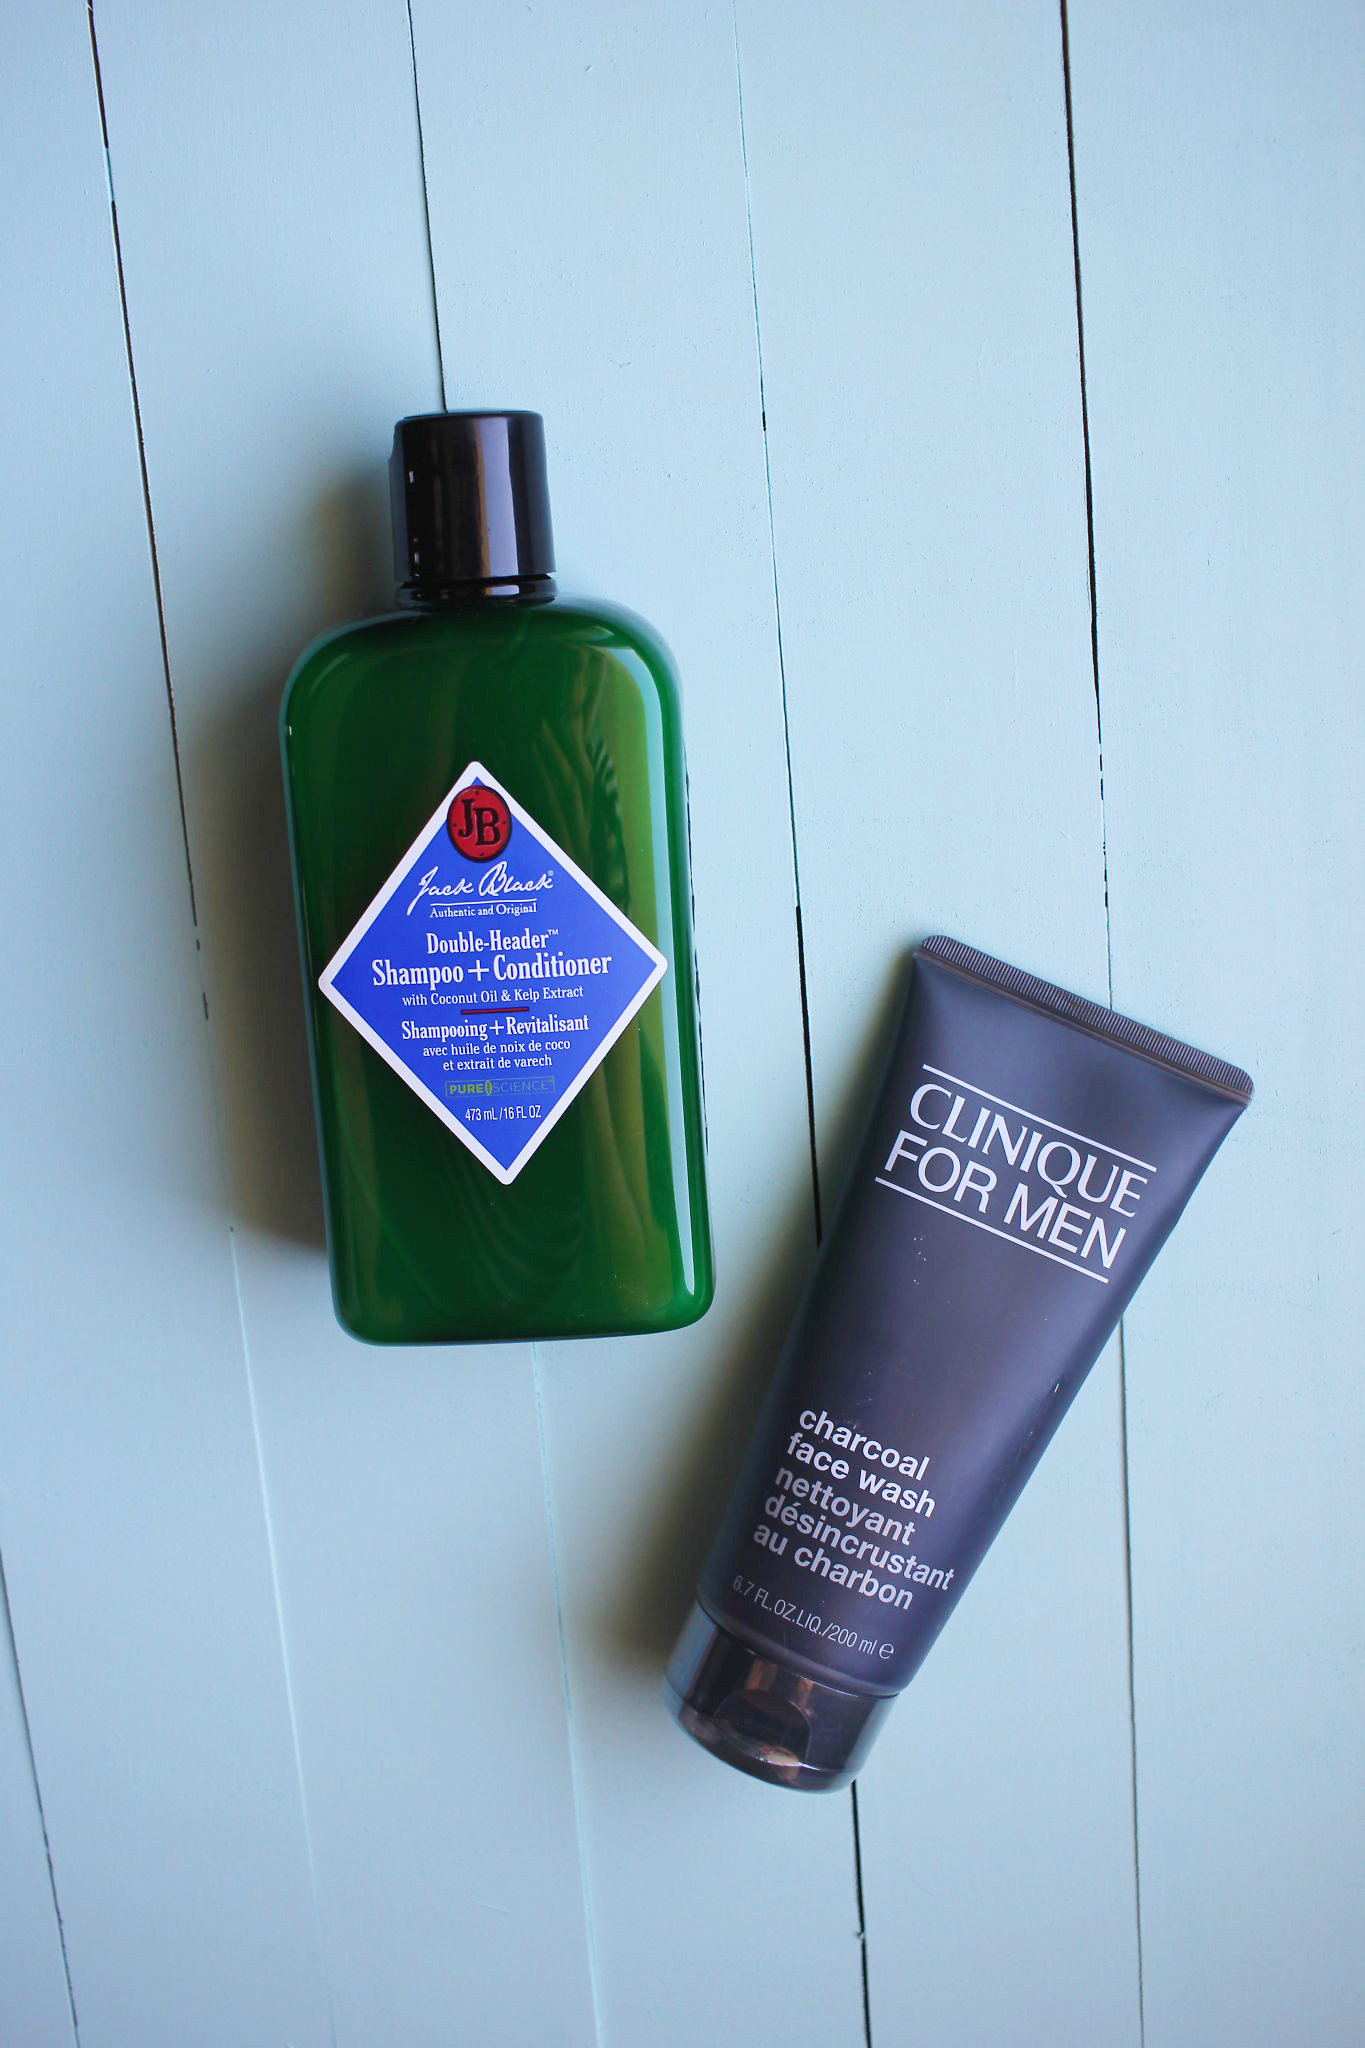 Jack Black Double Header and Clinique Charcoal Face Wash